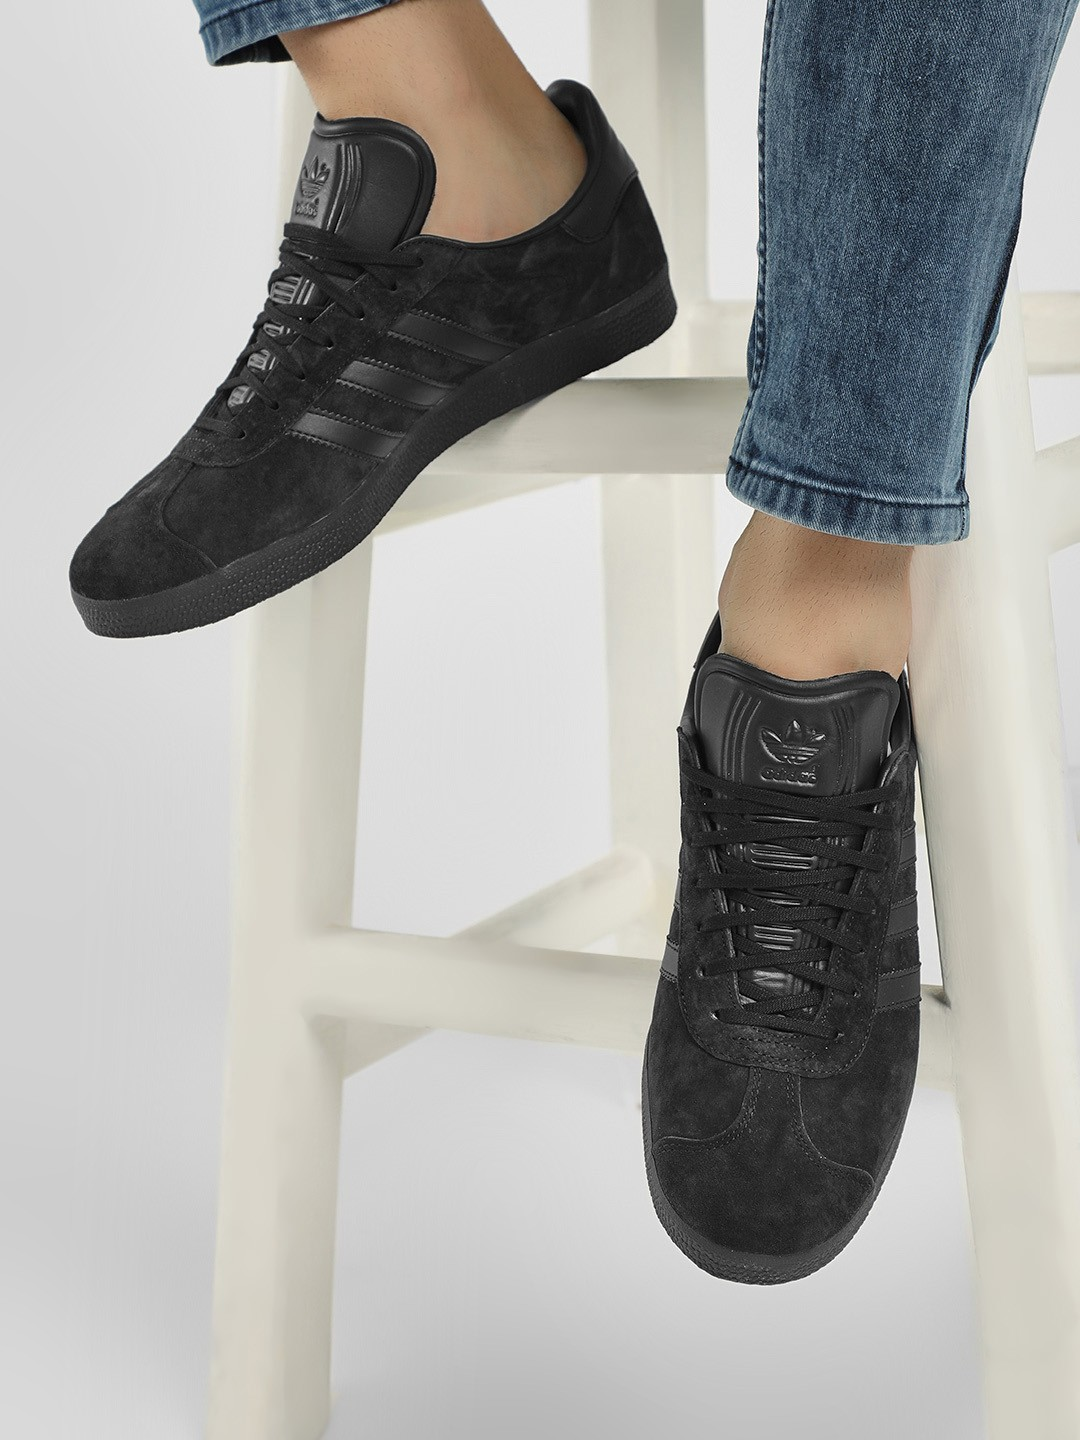 Adidas Originals Black Gazelle Shoes 1